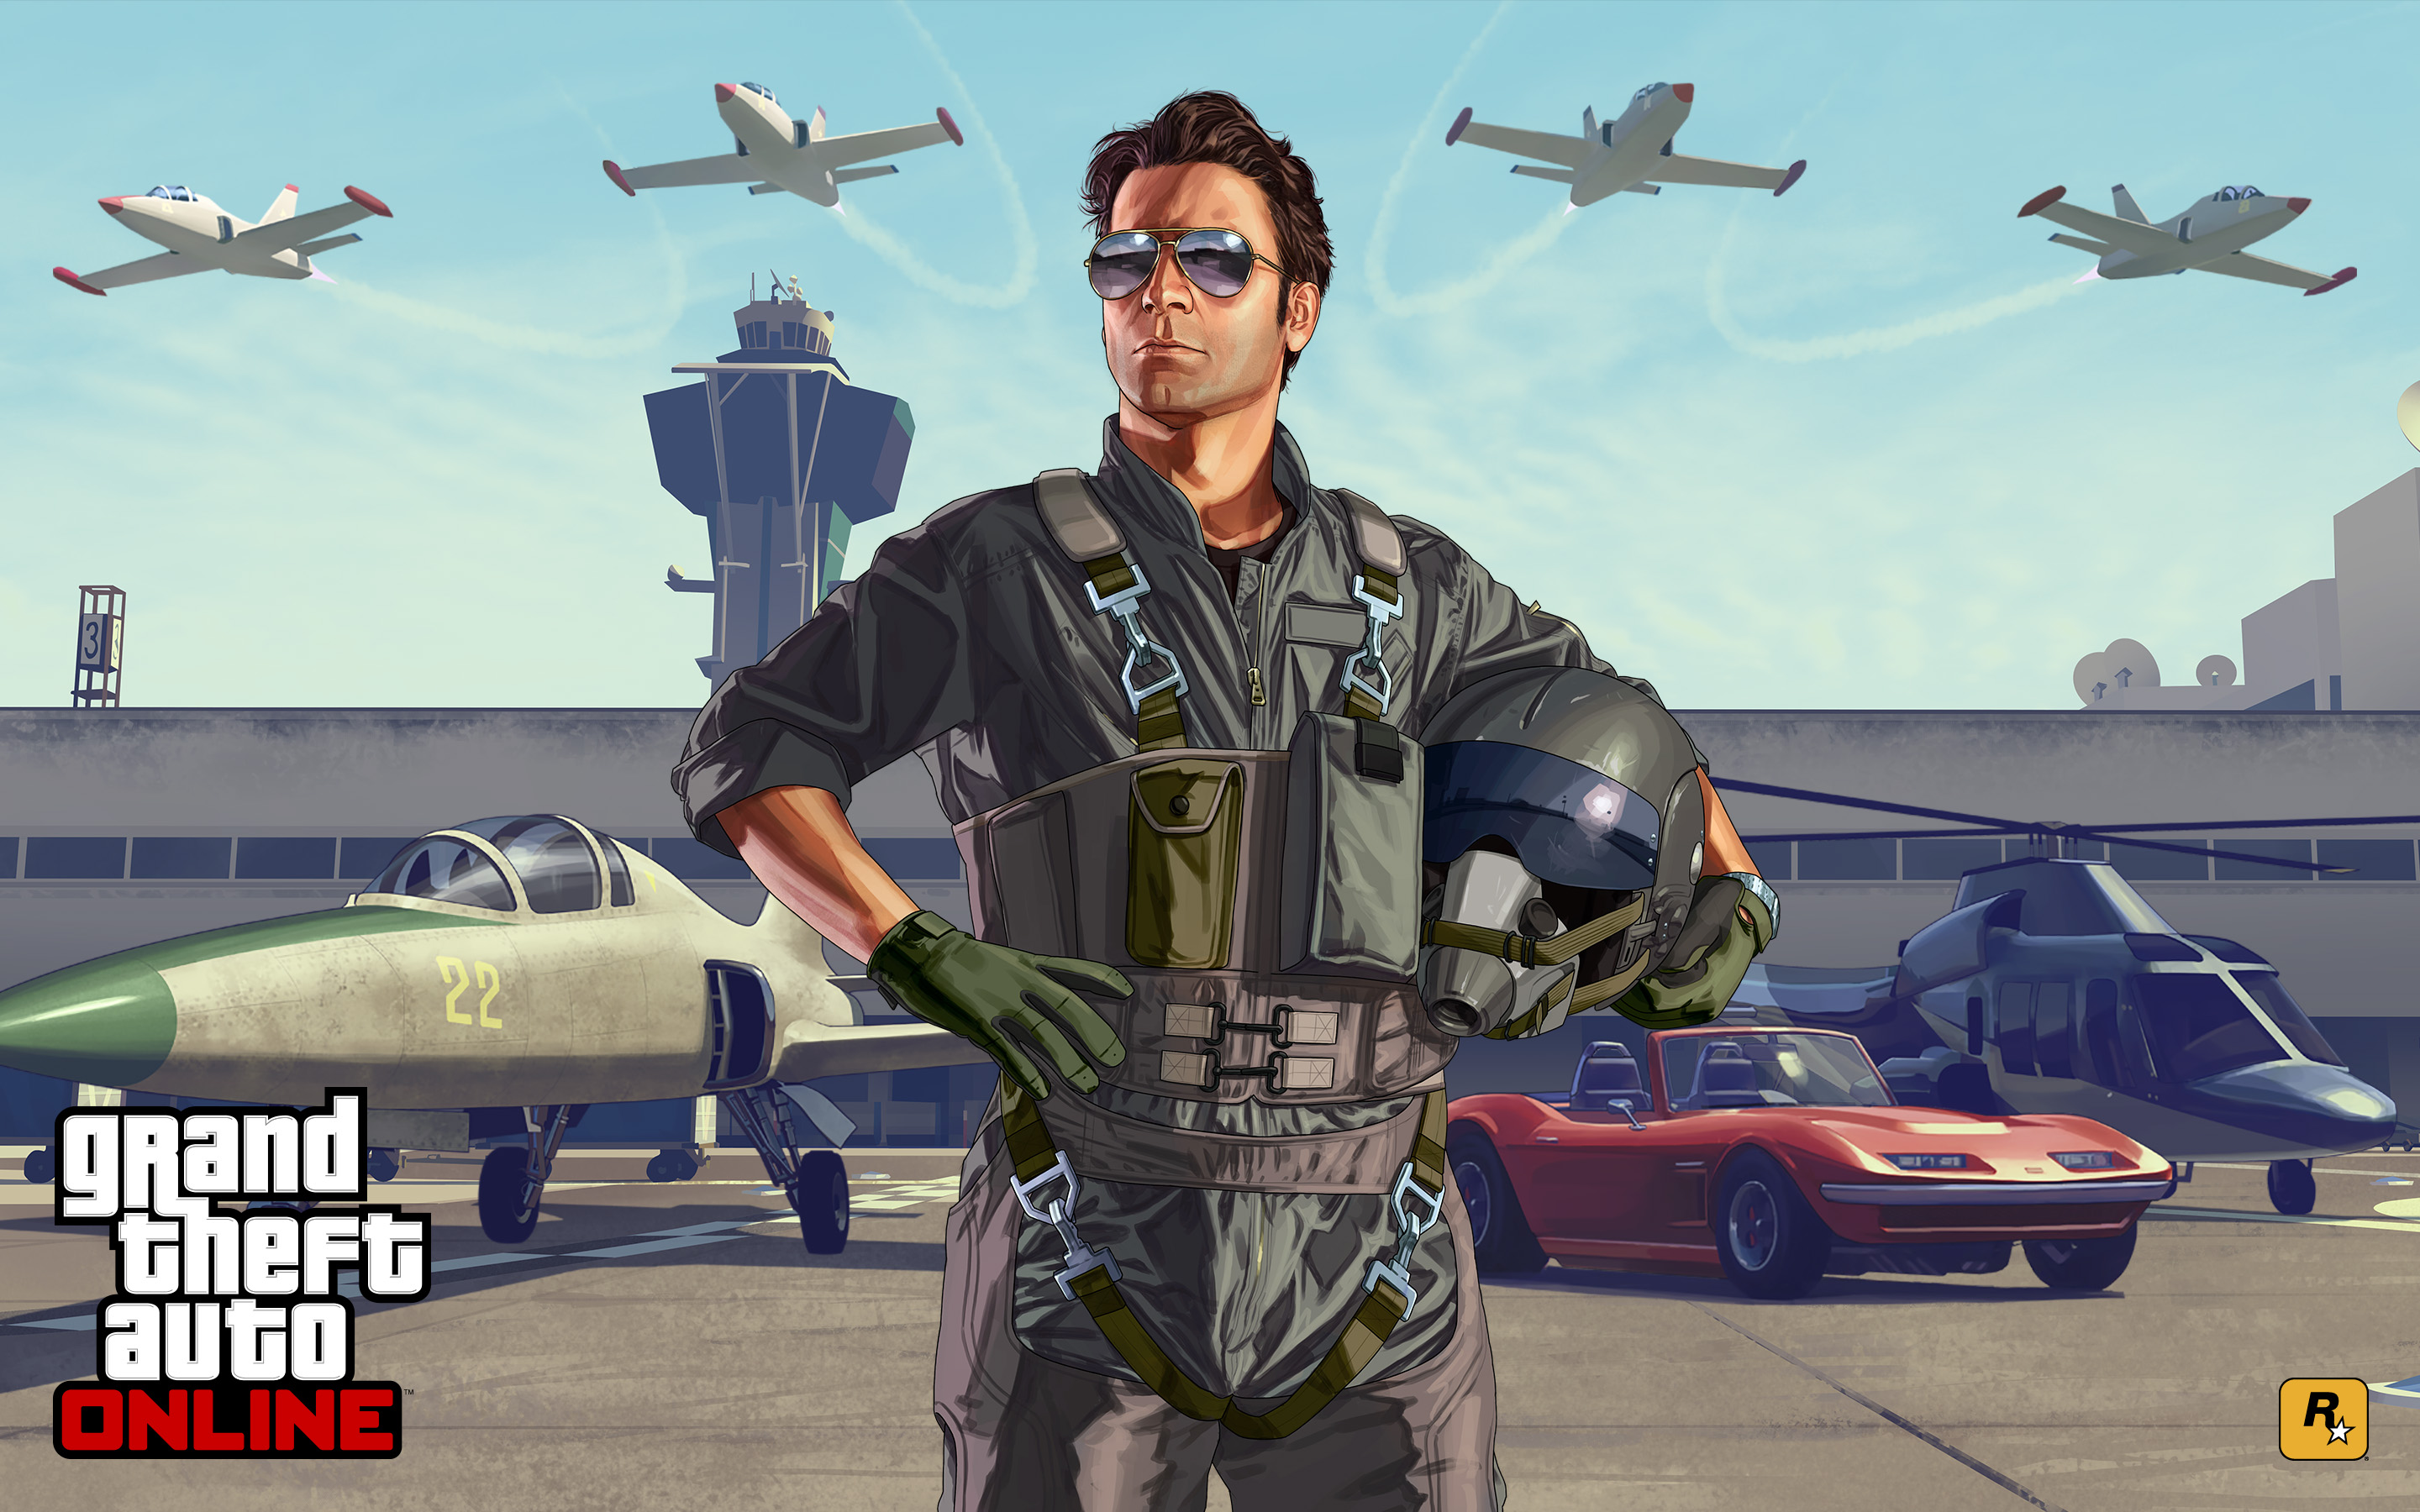 Image Result For Gta Wallpaper Grand Theft Auto Gta